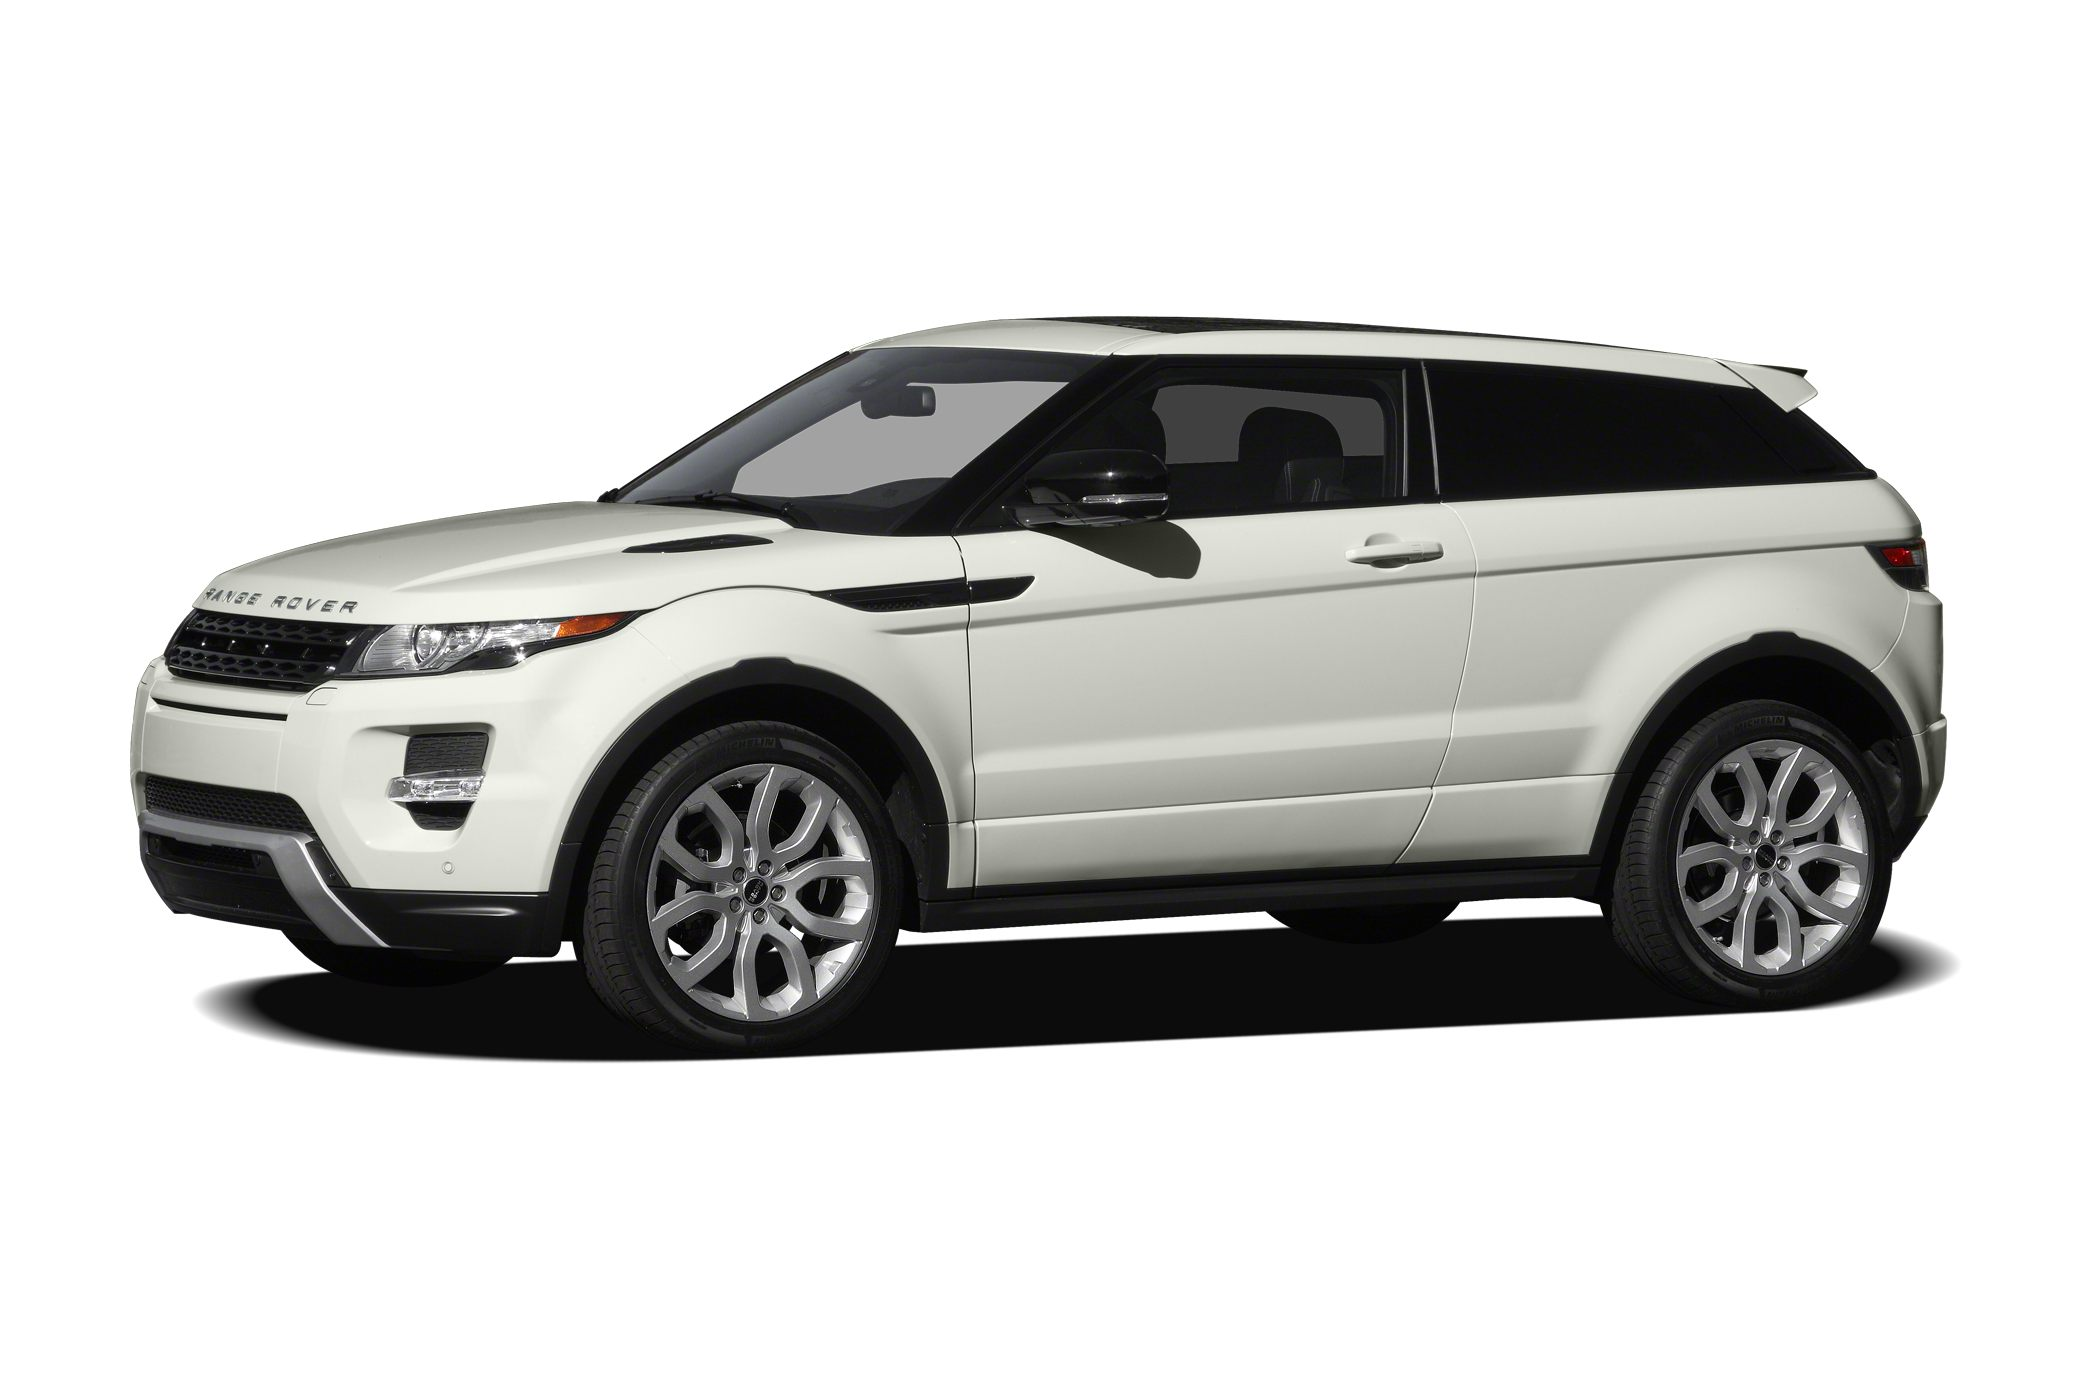 2012 Land Rover Range Rover Evoque New Car Test Drive